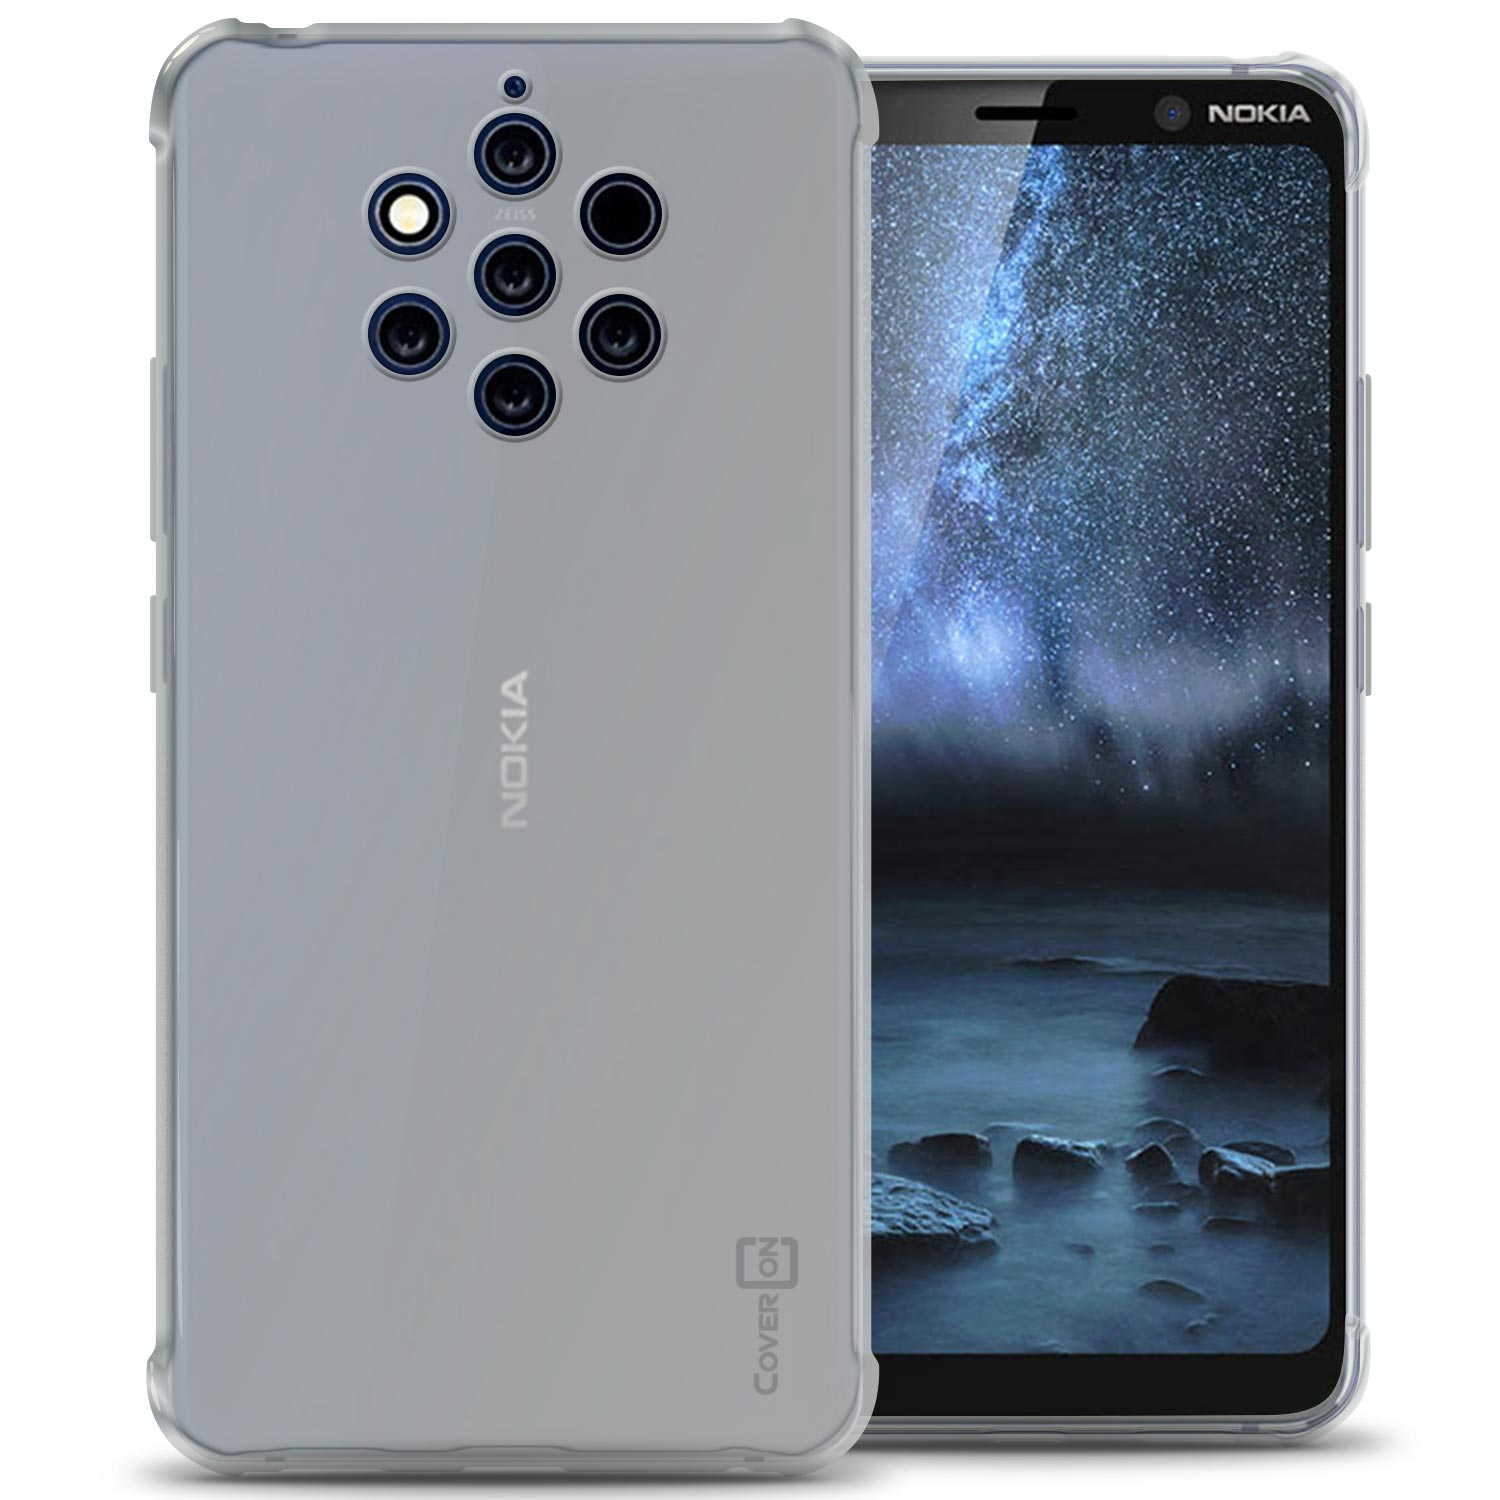 100% authentic bd397 68673 Details about Clear Case For Nokia 9 PureView Flexible TPU Rubber Gel Slim  Phone Cover